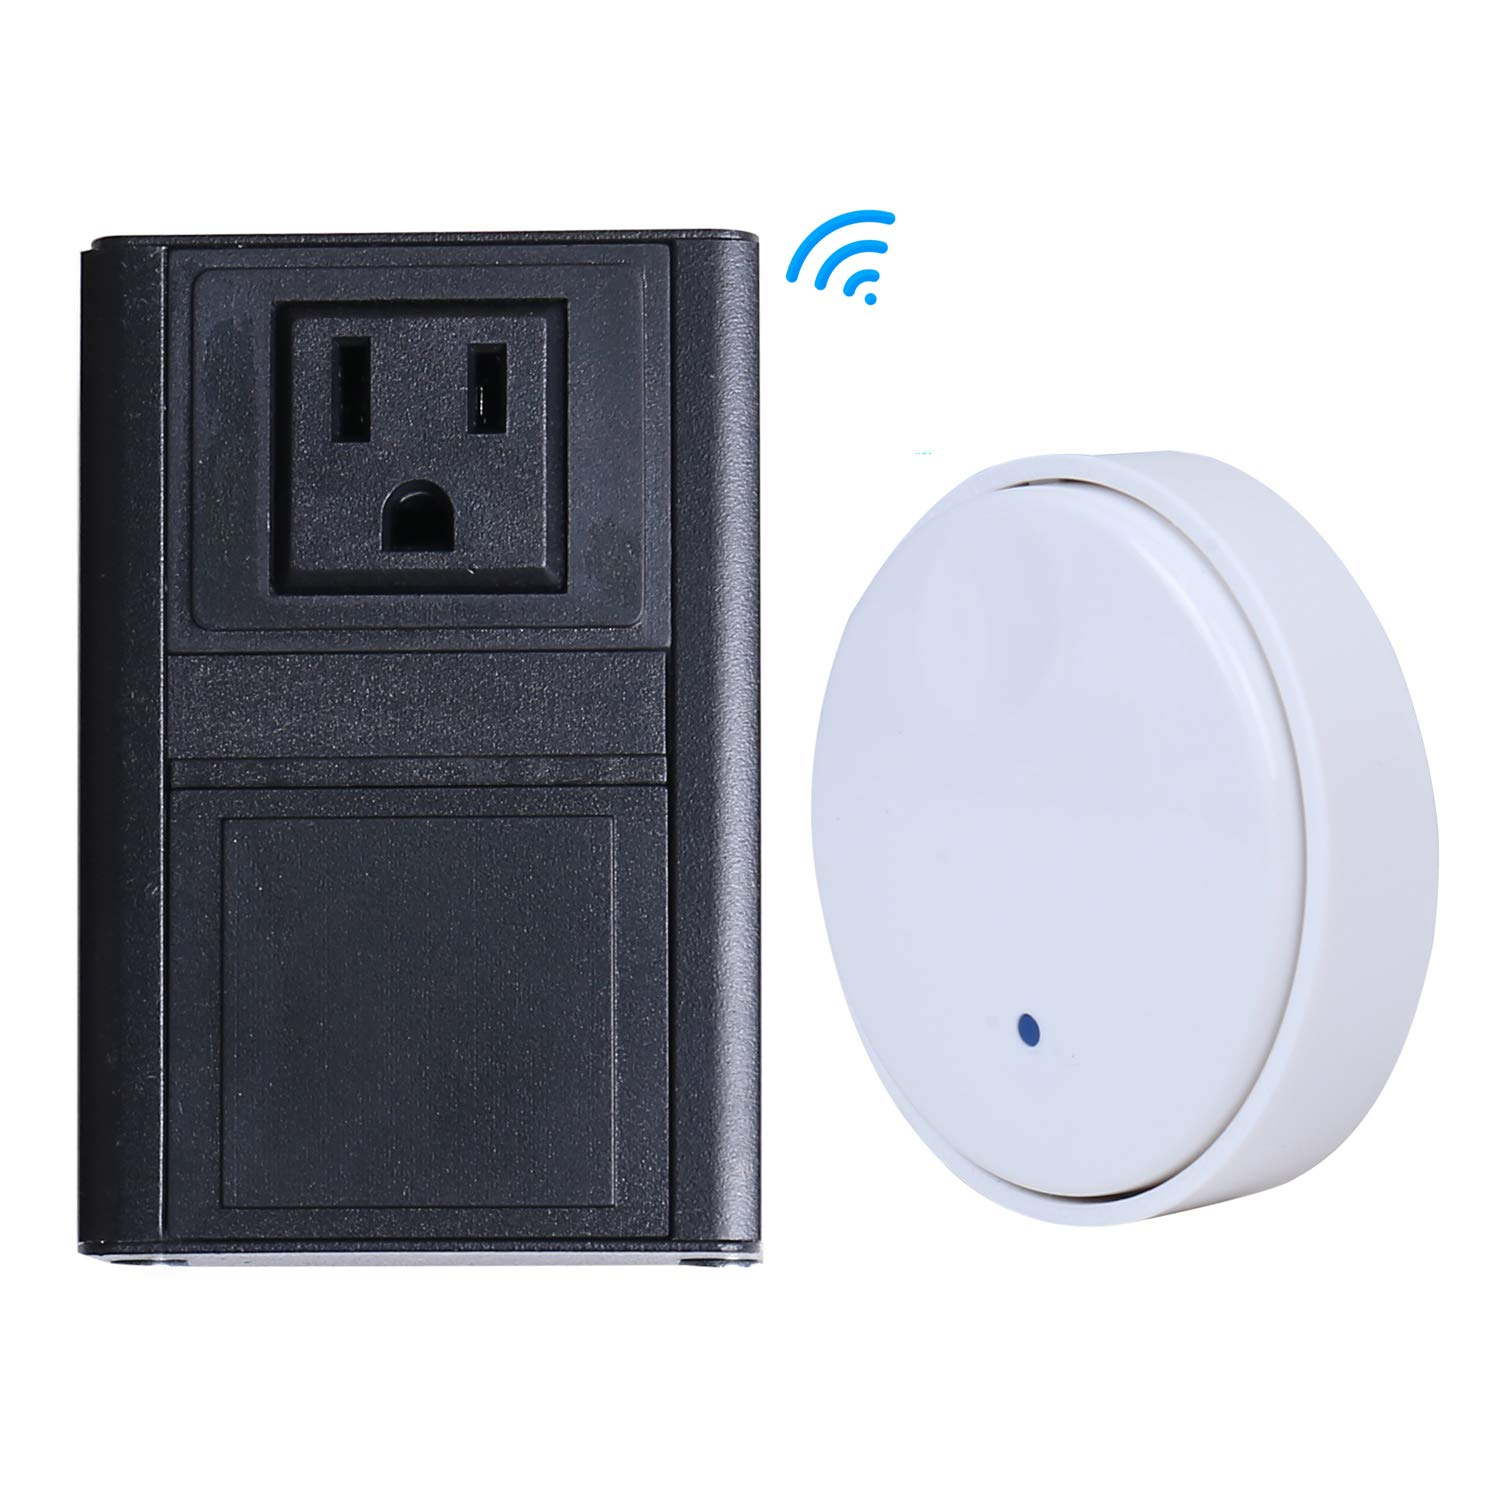 Sink Top Garbage Disposal Wireless Switch Kit, No Batteries Required, No Wiring, Self-Powered Wireless Switch for Waste Disposer